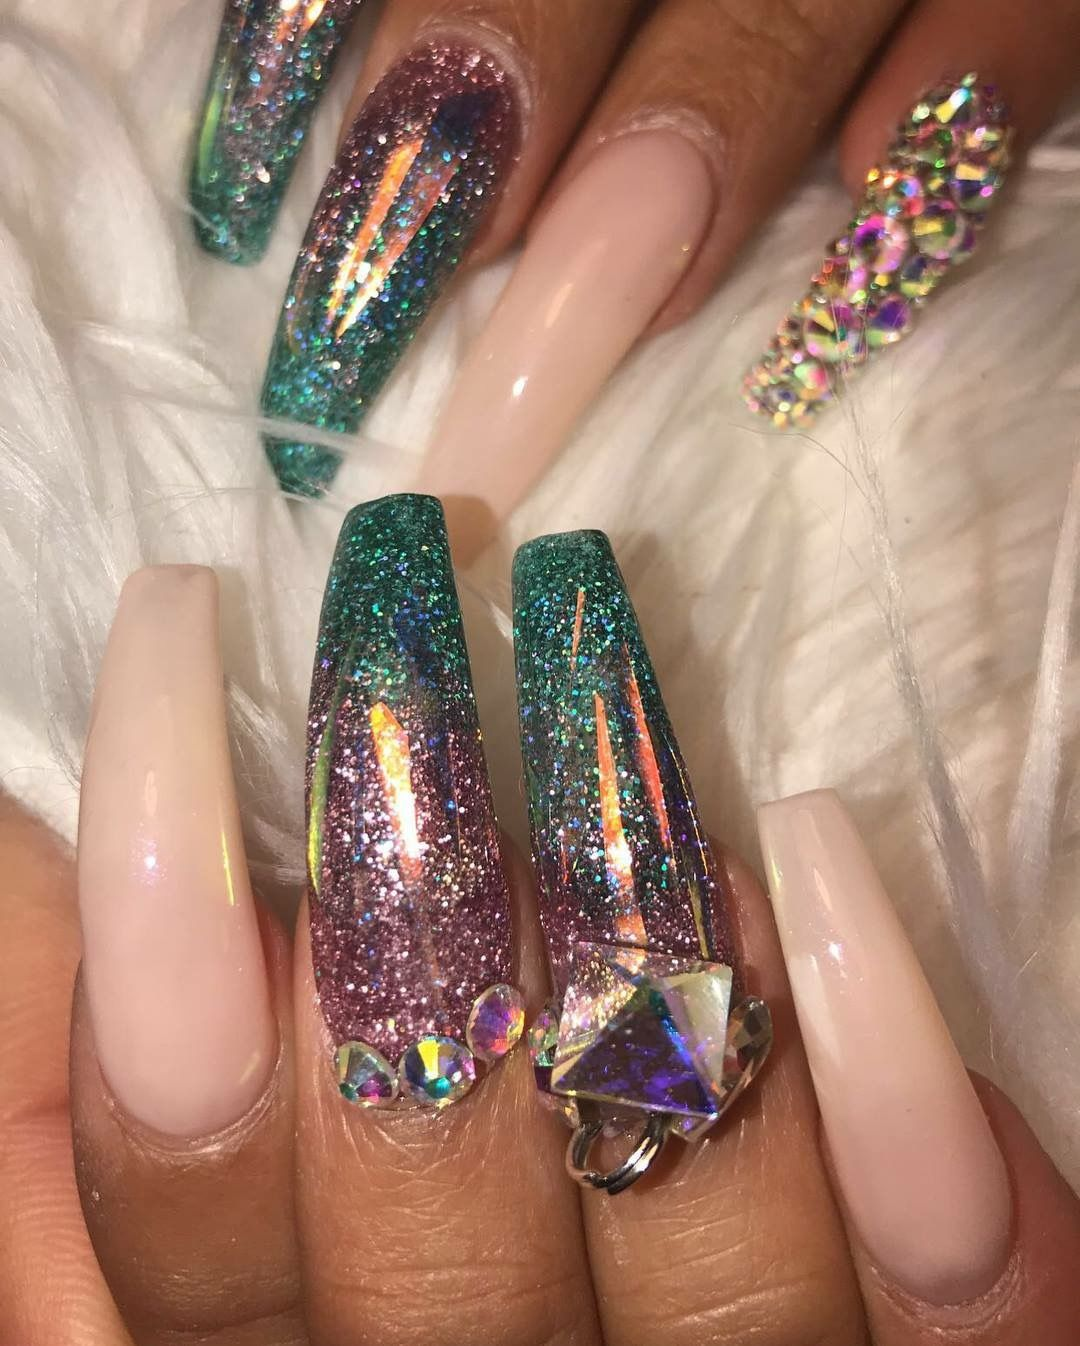 Pin by Emmi Phillips on Acrylic Nails | Pinterest | Nail inspo, Nail ...